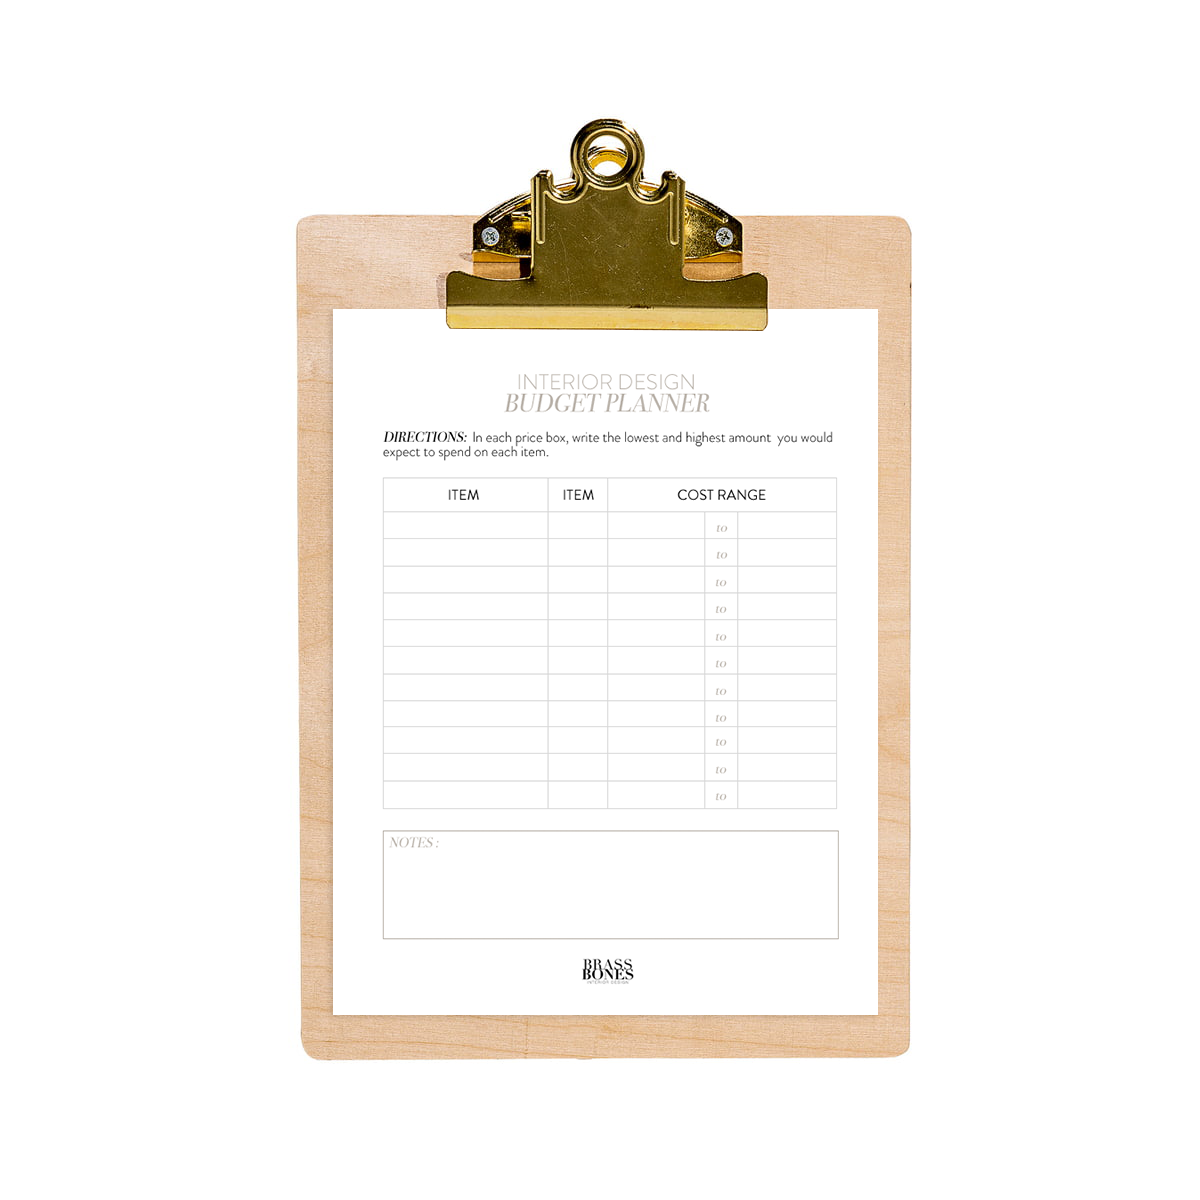 Free_Download_Interior_Design_Budget_Planner.png